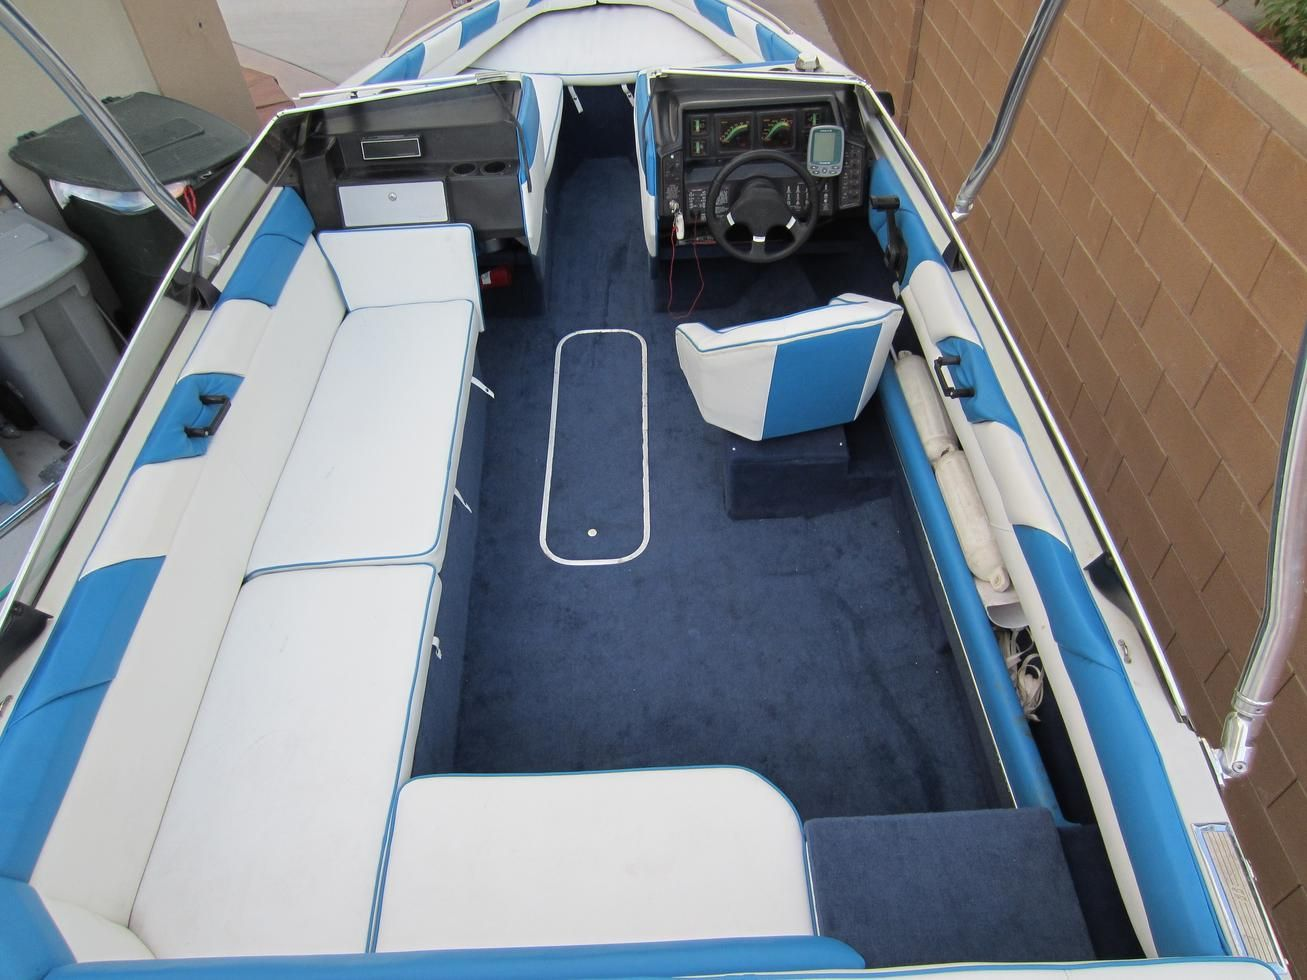 1989 Bayliner Capri With Live Well Pics Google Search Fav Boats Pinterest Boating And